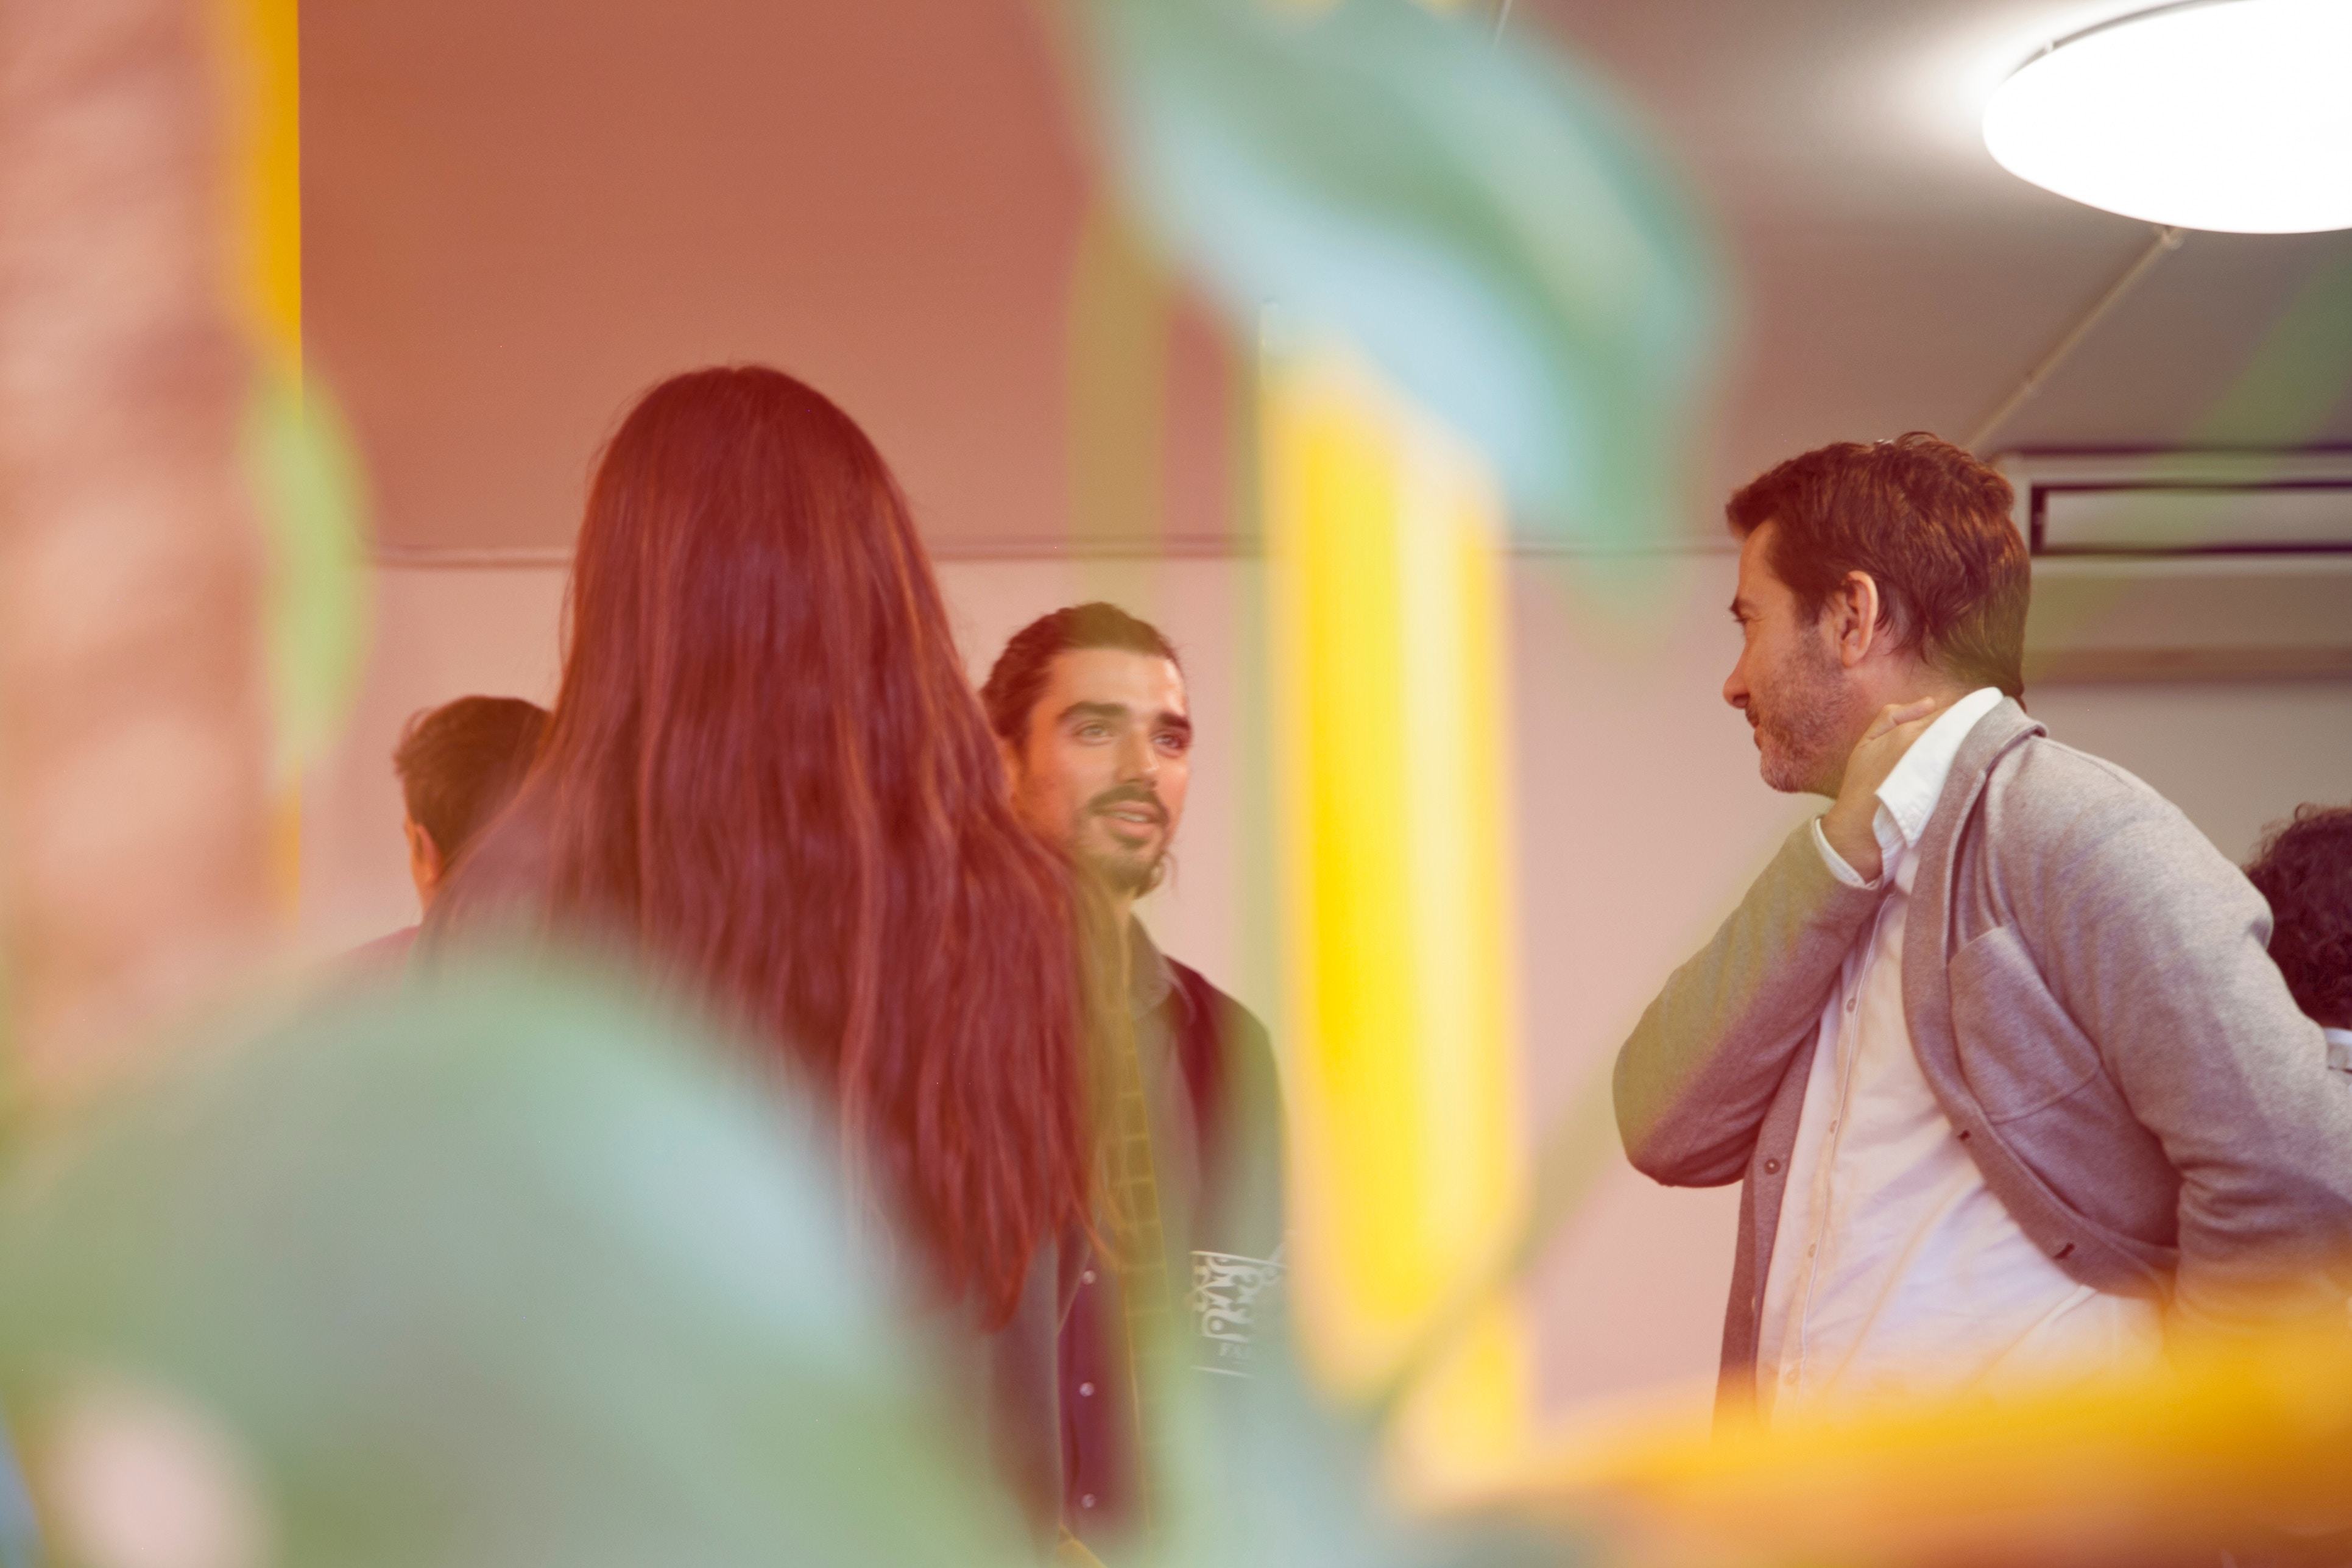 THE LOST ART OF FACE-TO-FACE NETWORKING AND HOW TO MAKE THE MOST OF YOUR NEXT NETWORKING EVENT